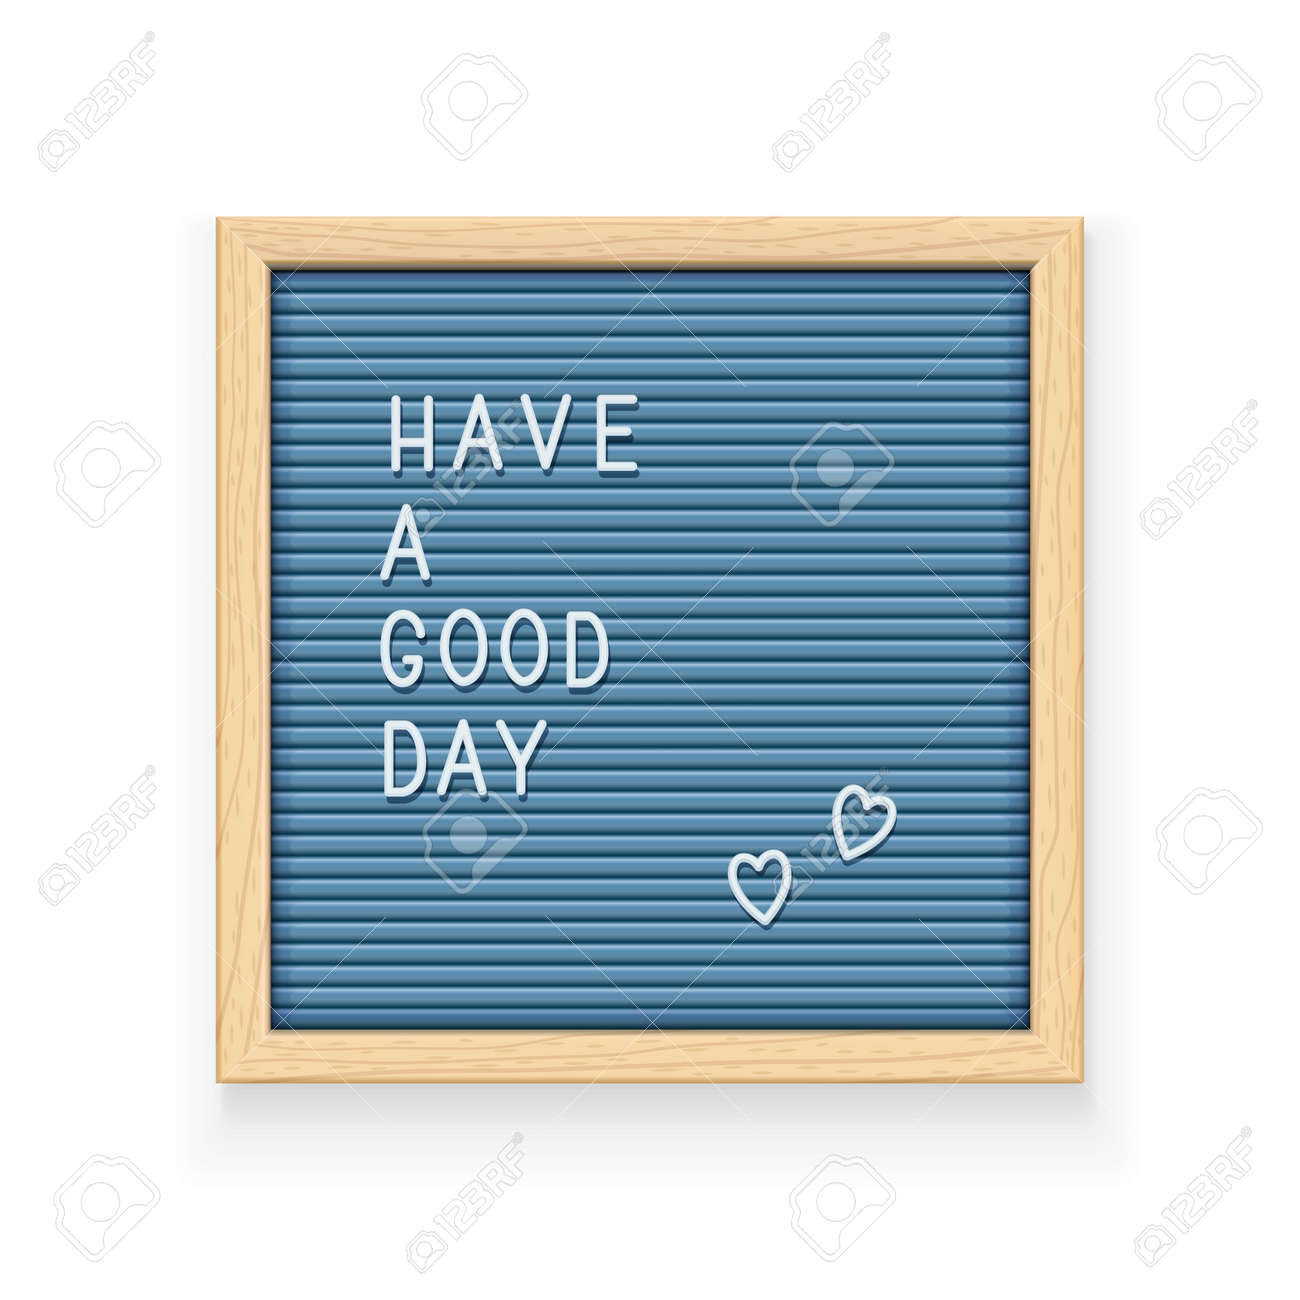 Blue letter board with inscription Have a good day. Letterboard for note. Plate for message. Office stationery. Wooden frame. Isolated white background. EPS10 vector illustration. - 103732780